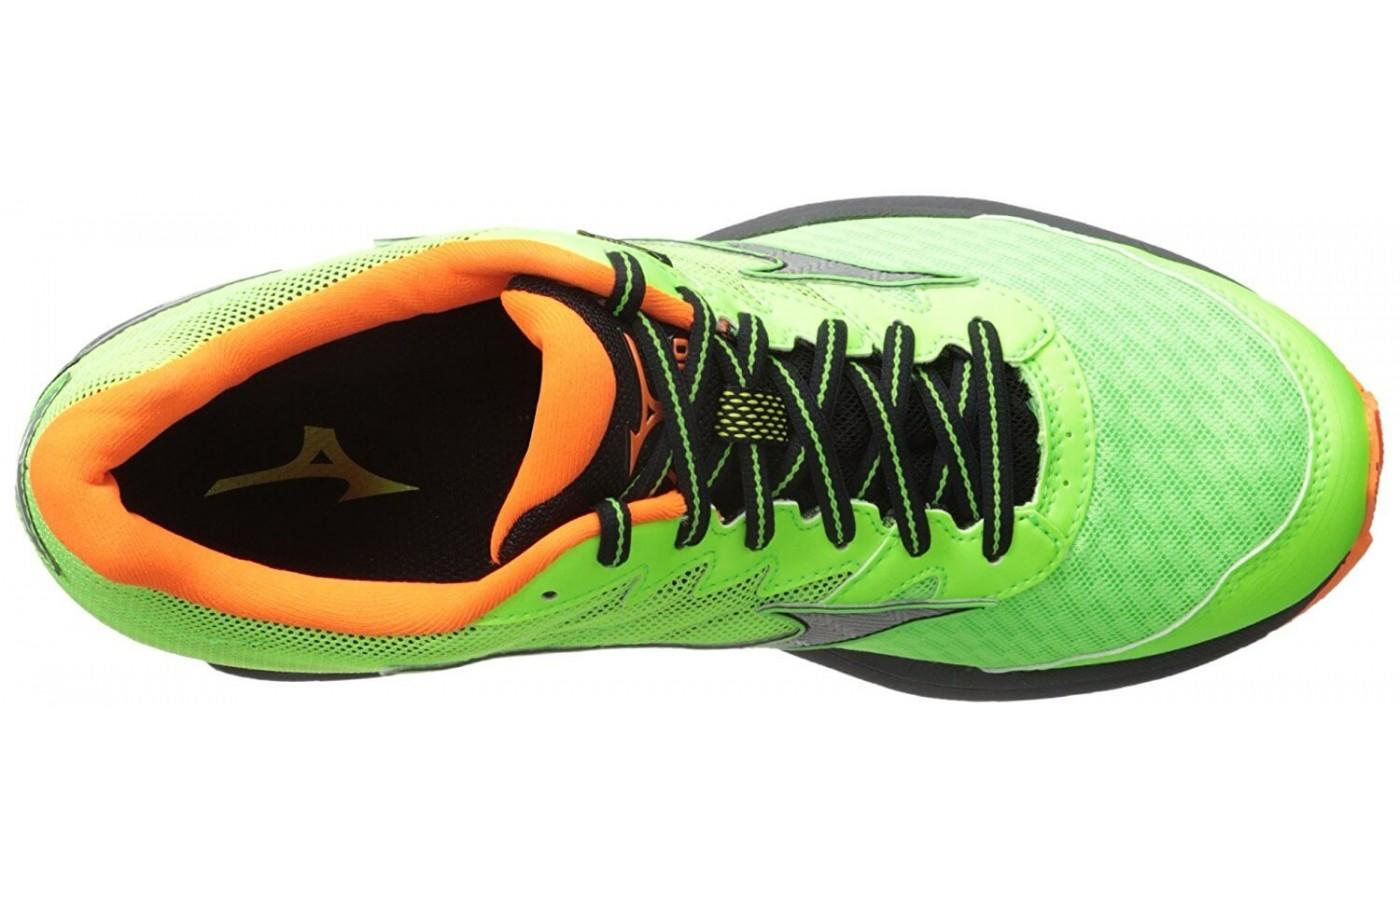 this shoe features a gore tex material for water proofing